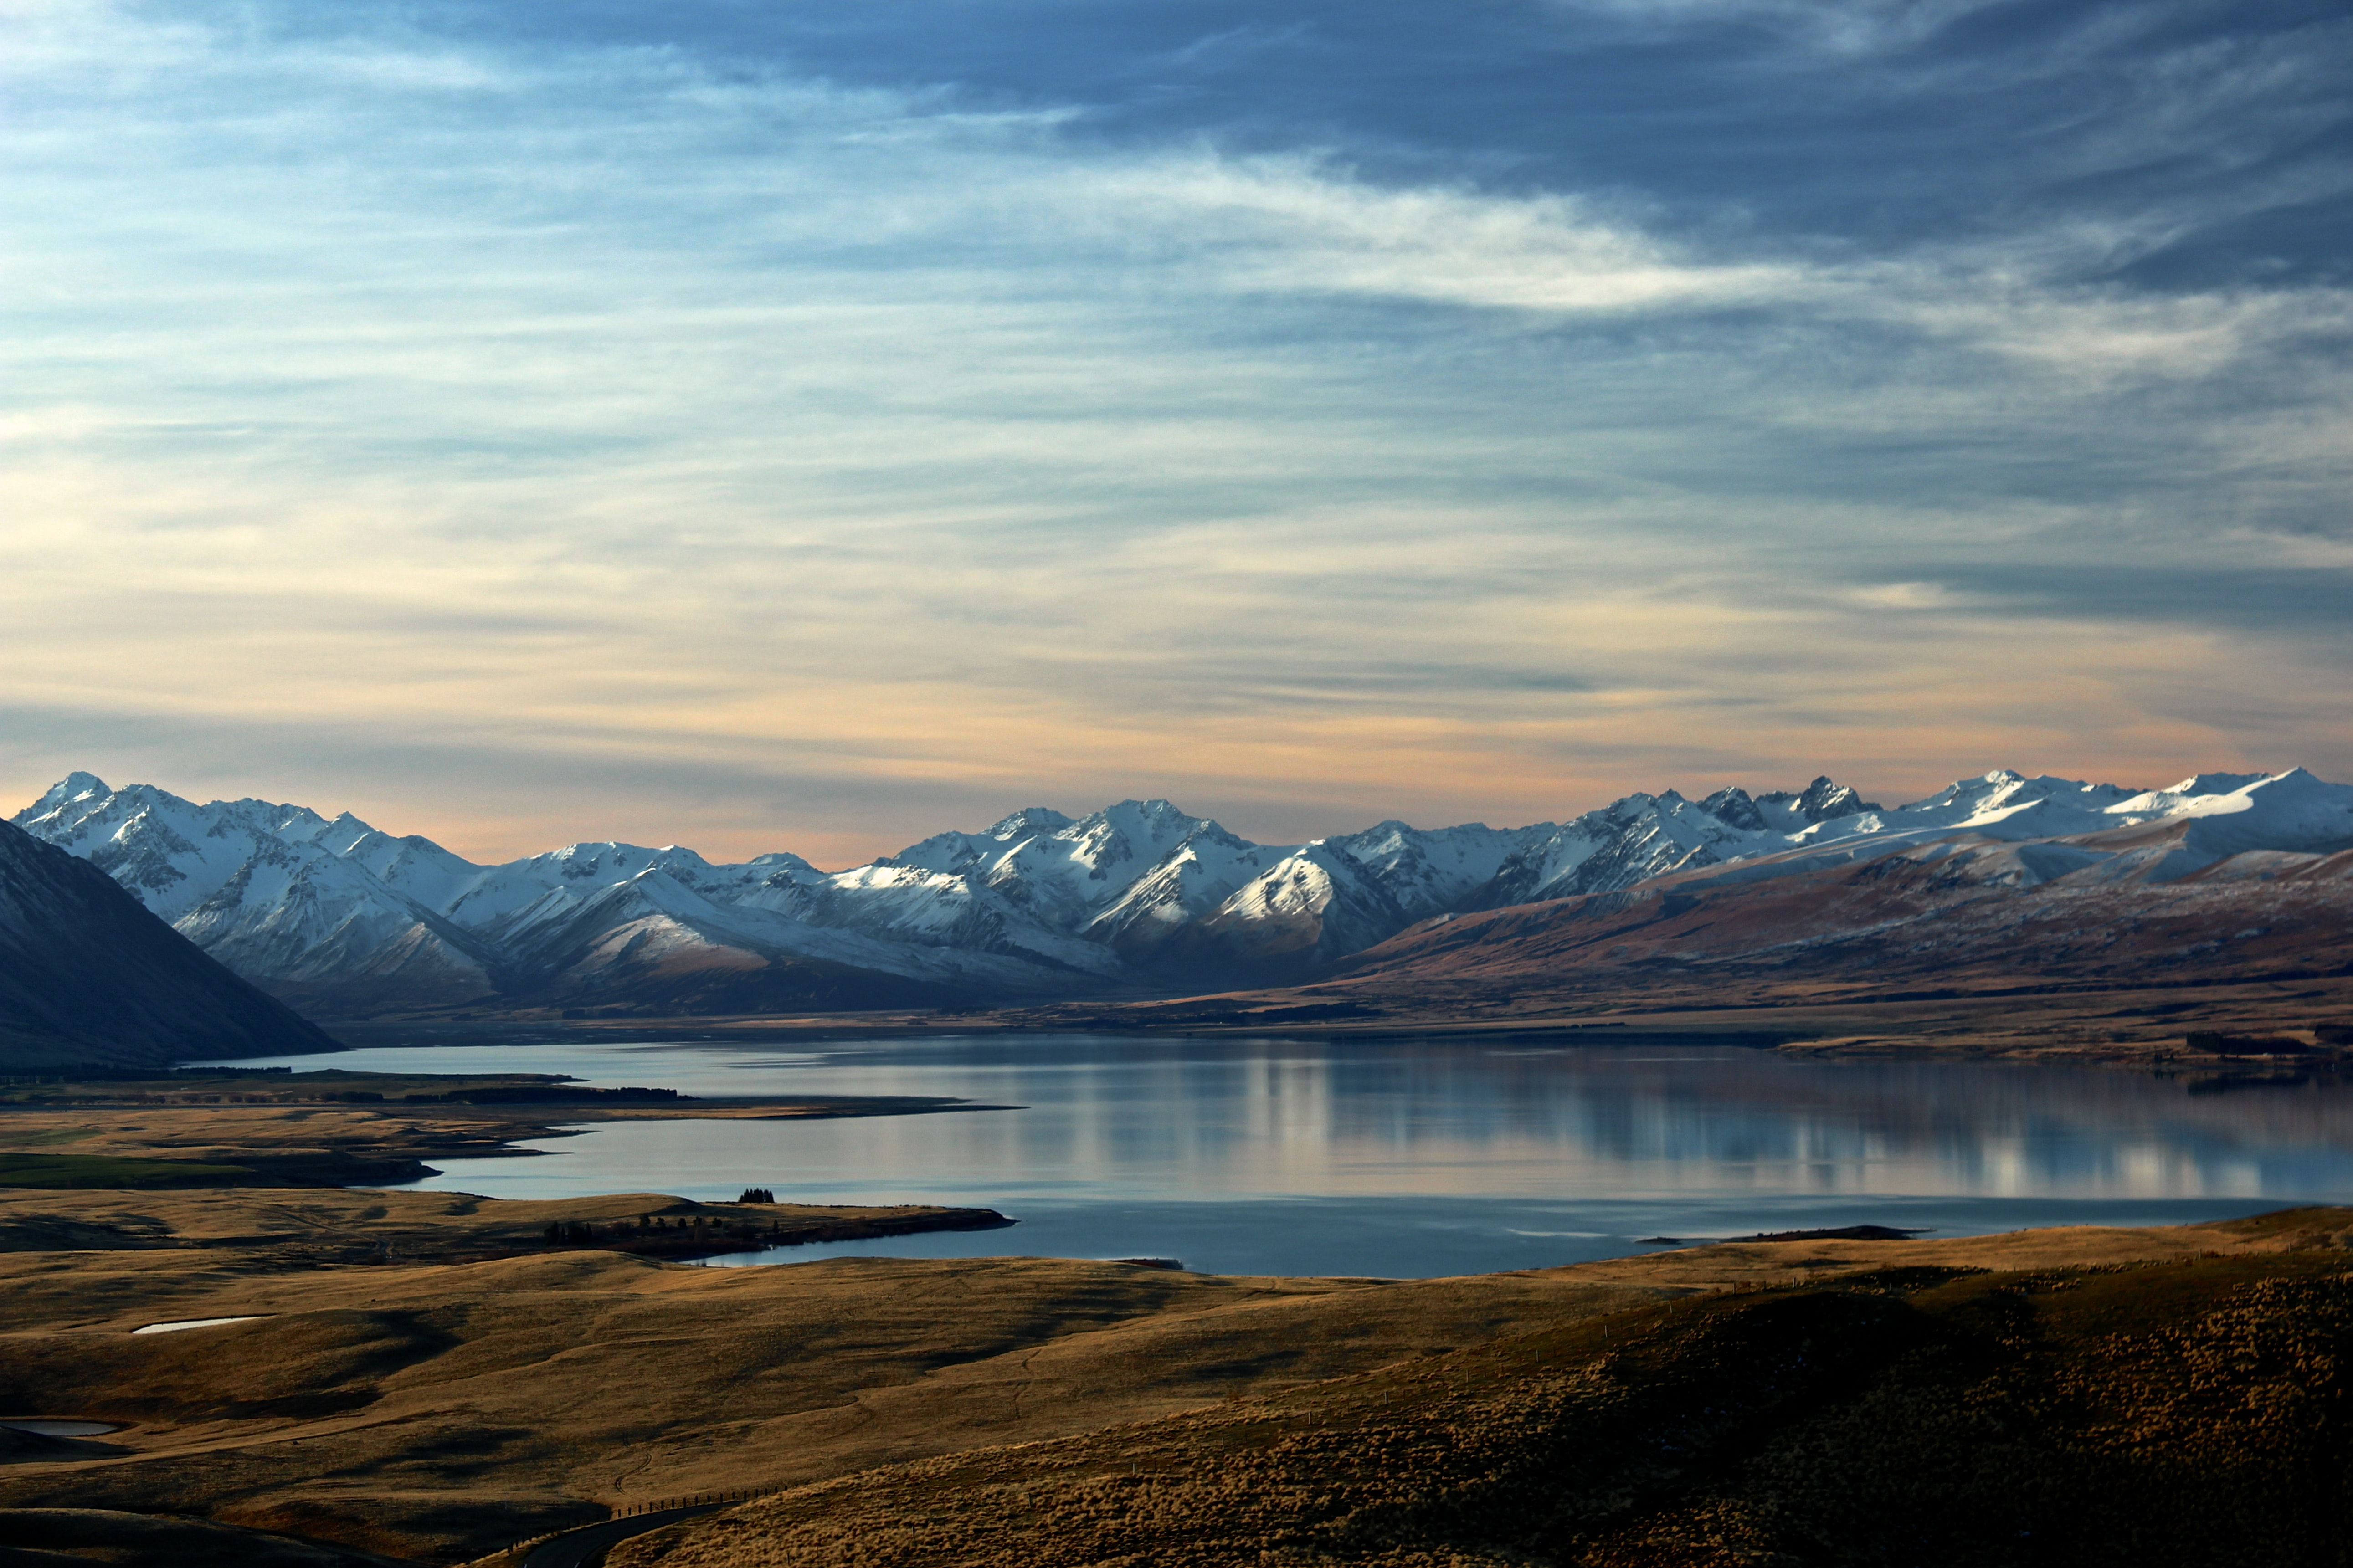 landscape photography of lake and mountain